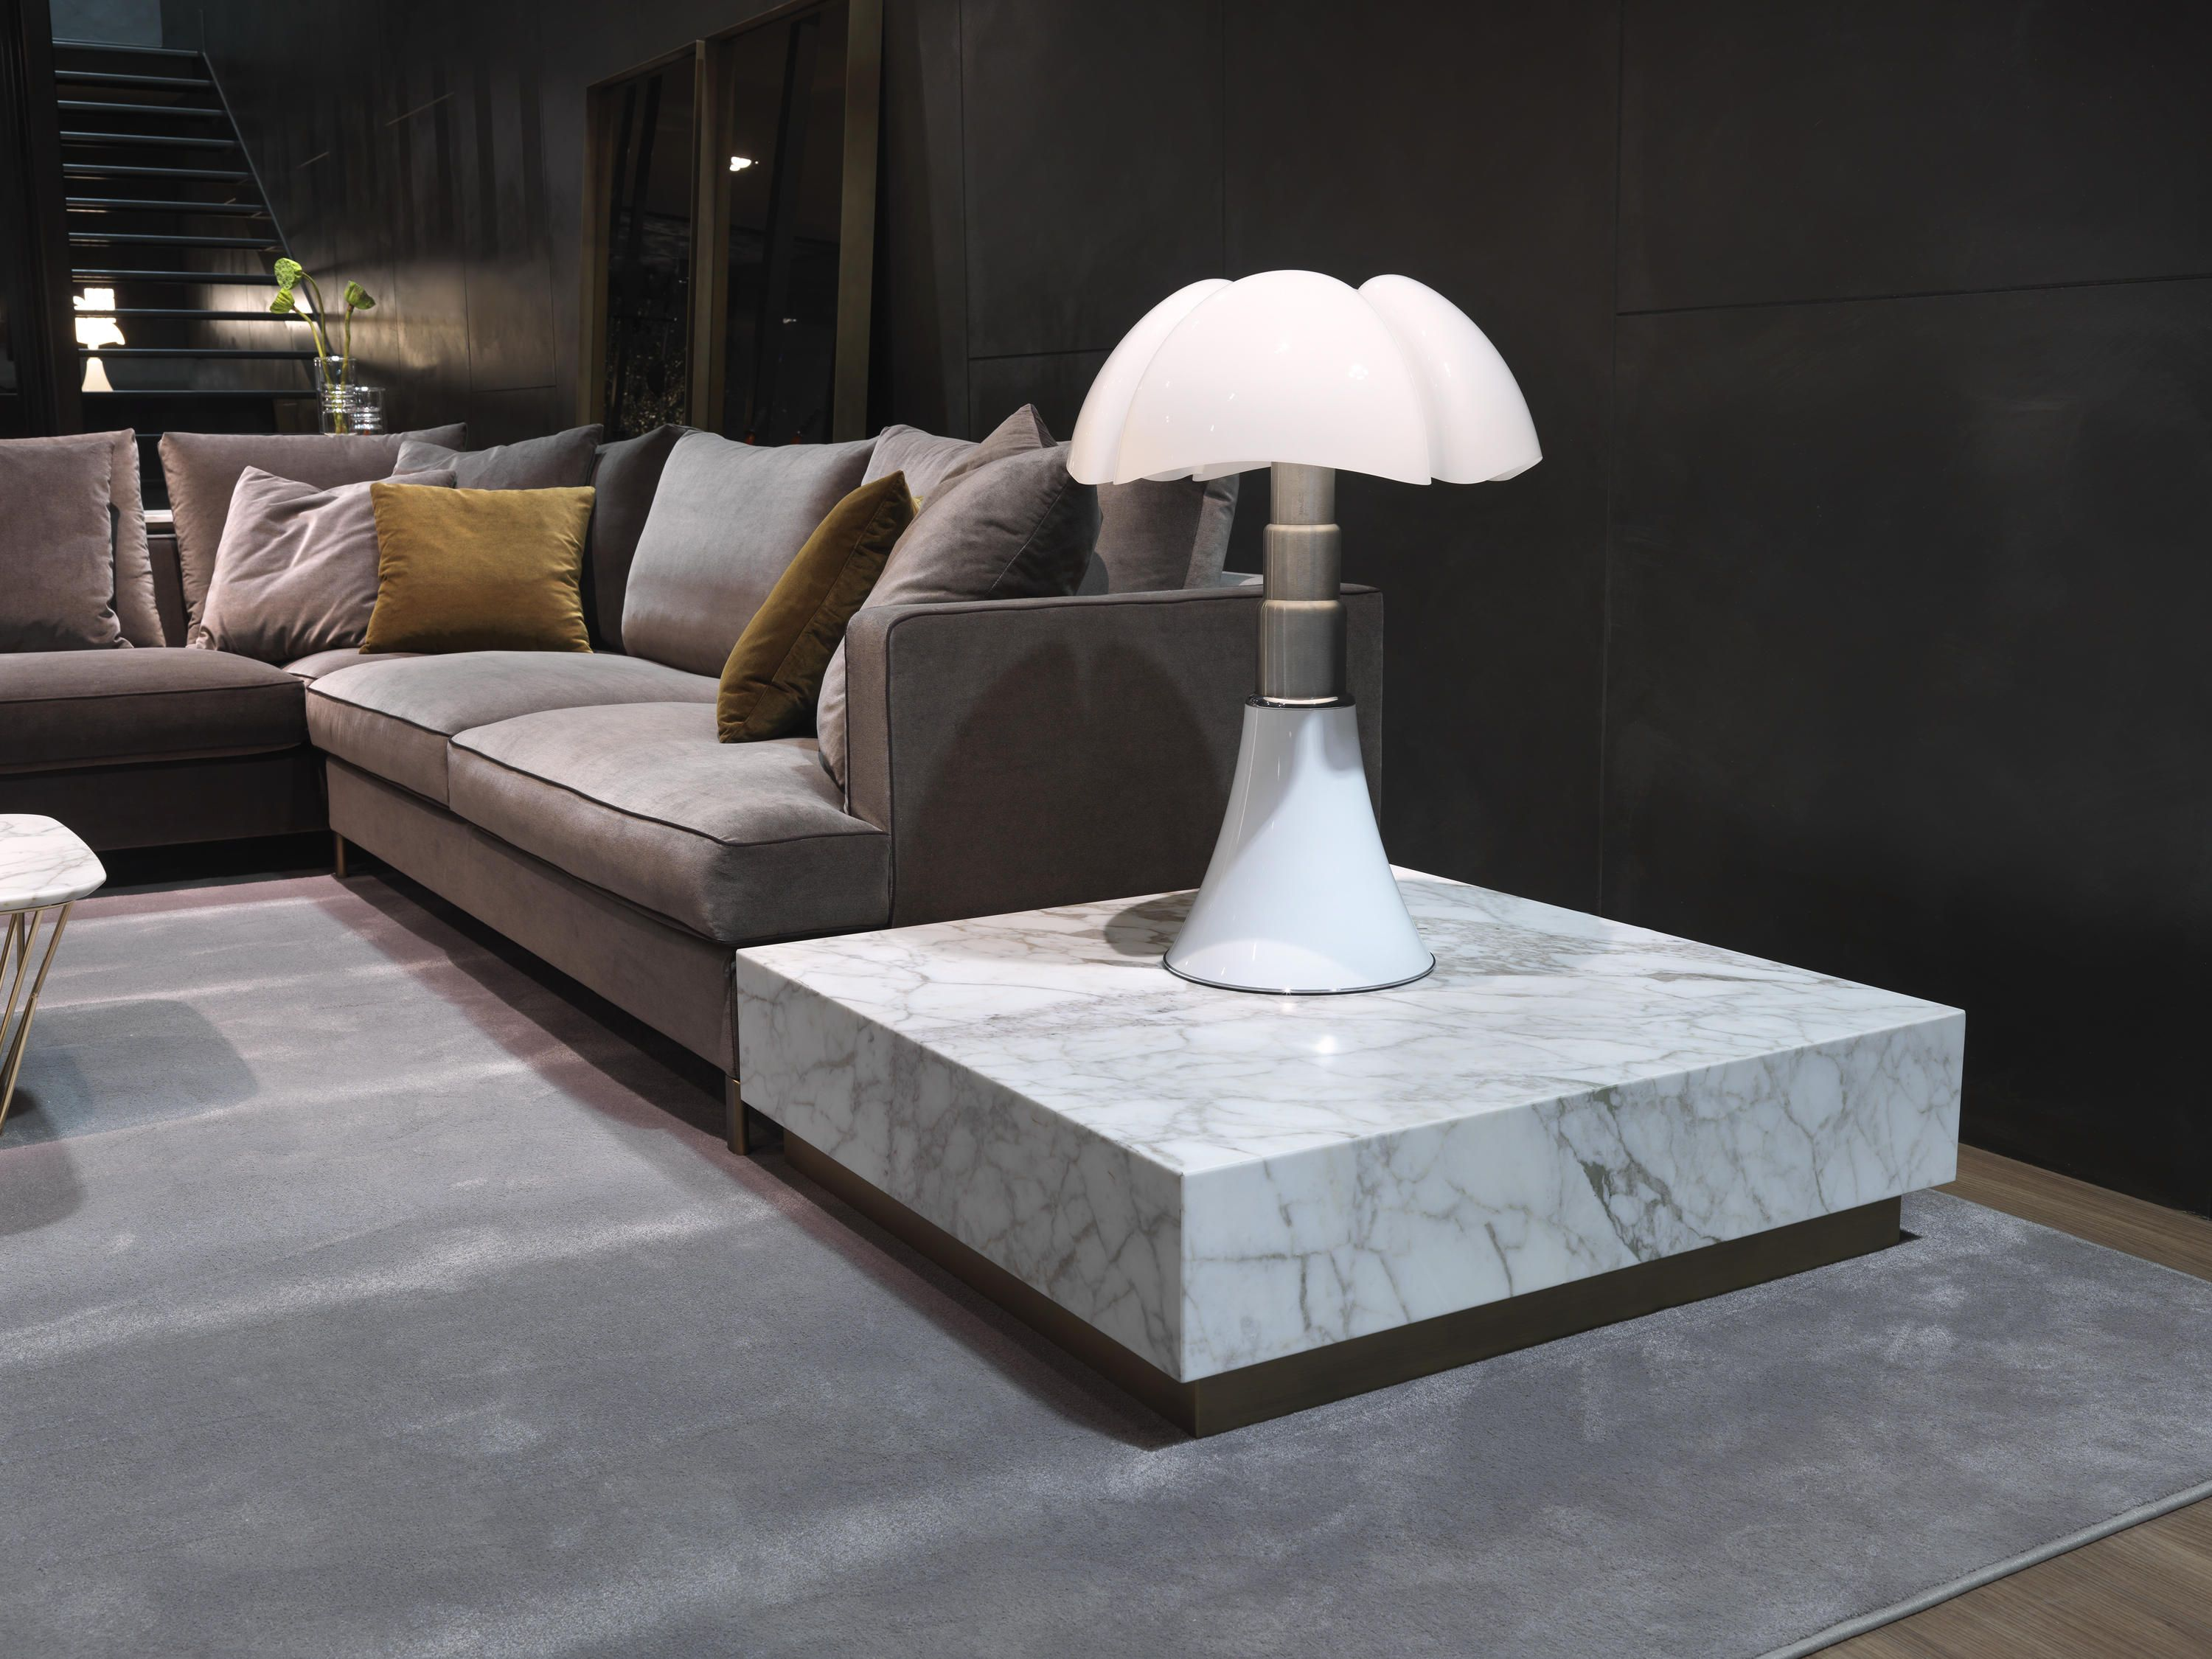 Thor Designer Coffee Tables From Marelli Architonic Nowonarchitonic Marble Furniture Design Coffee Table Living Room Modern Marble Coffee Table Living Room [ 2250 x 3000 Pixel ]